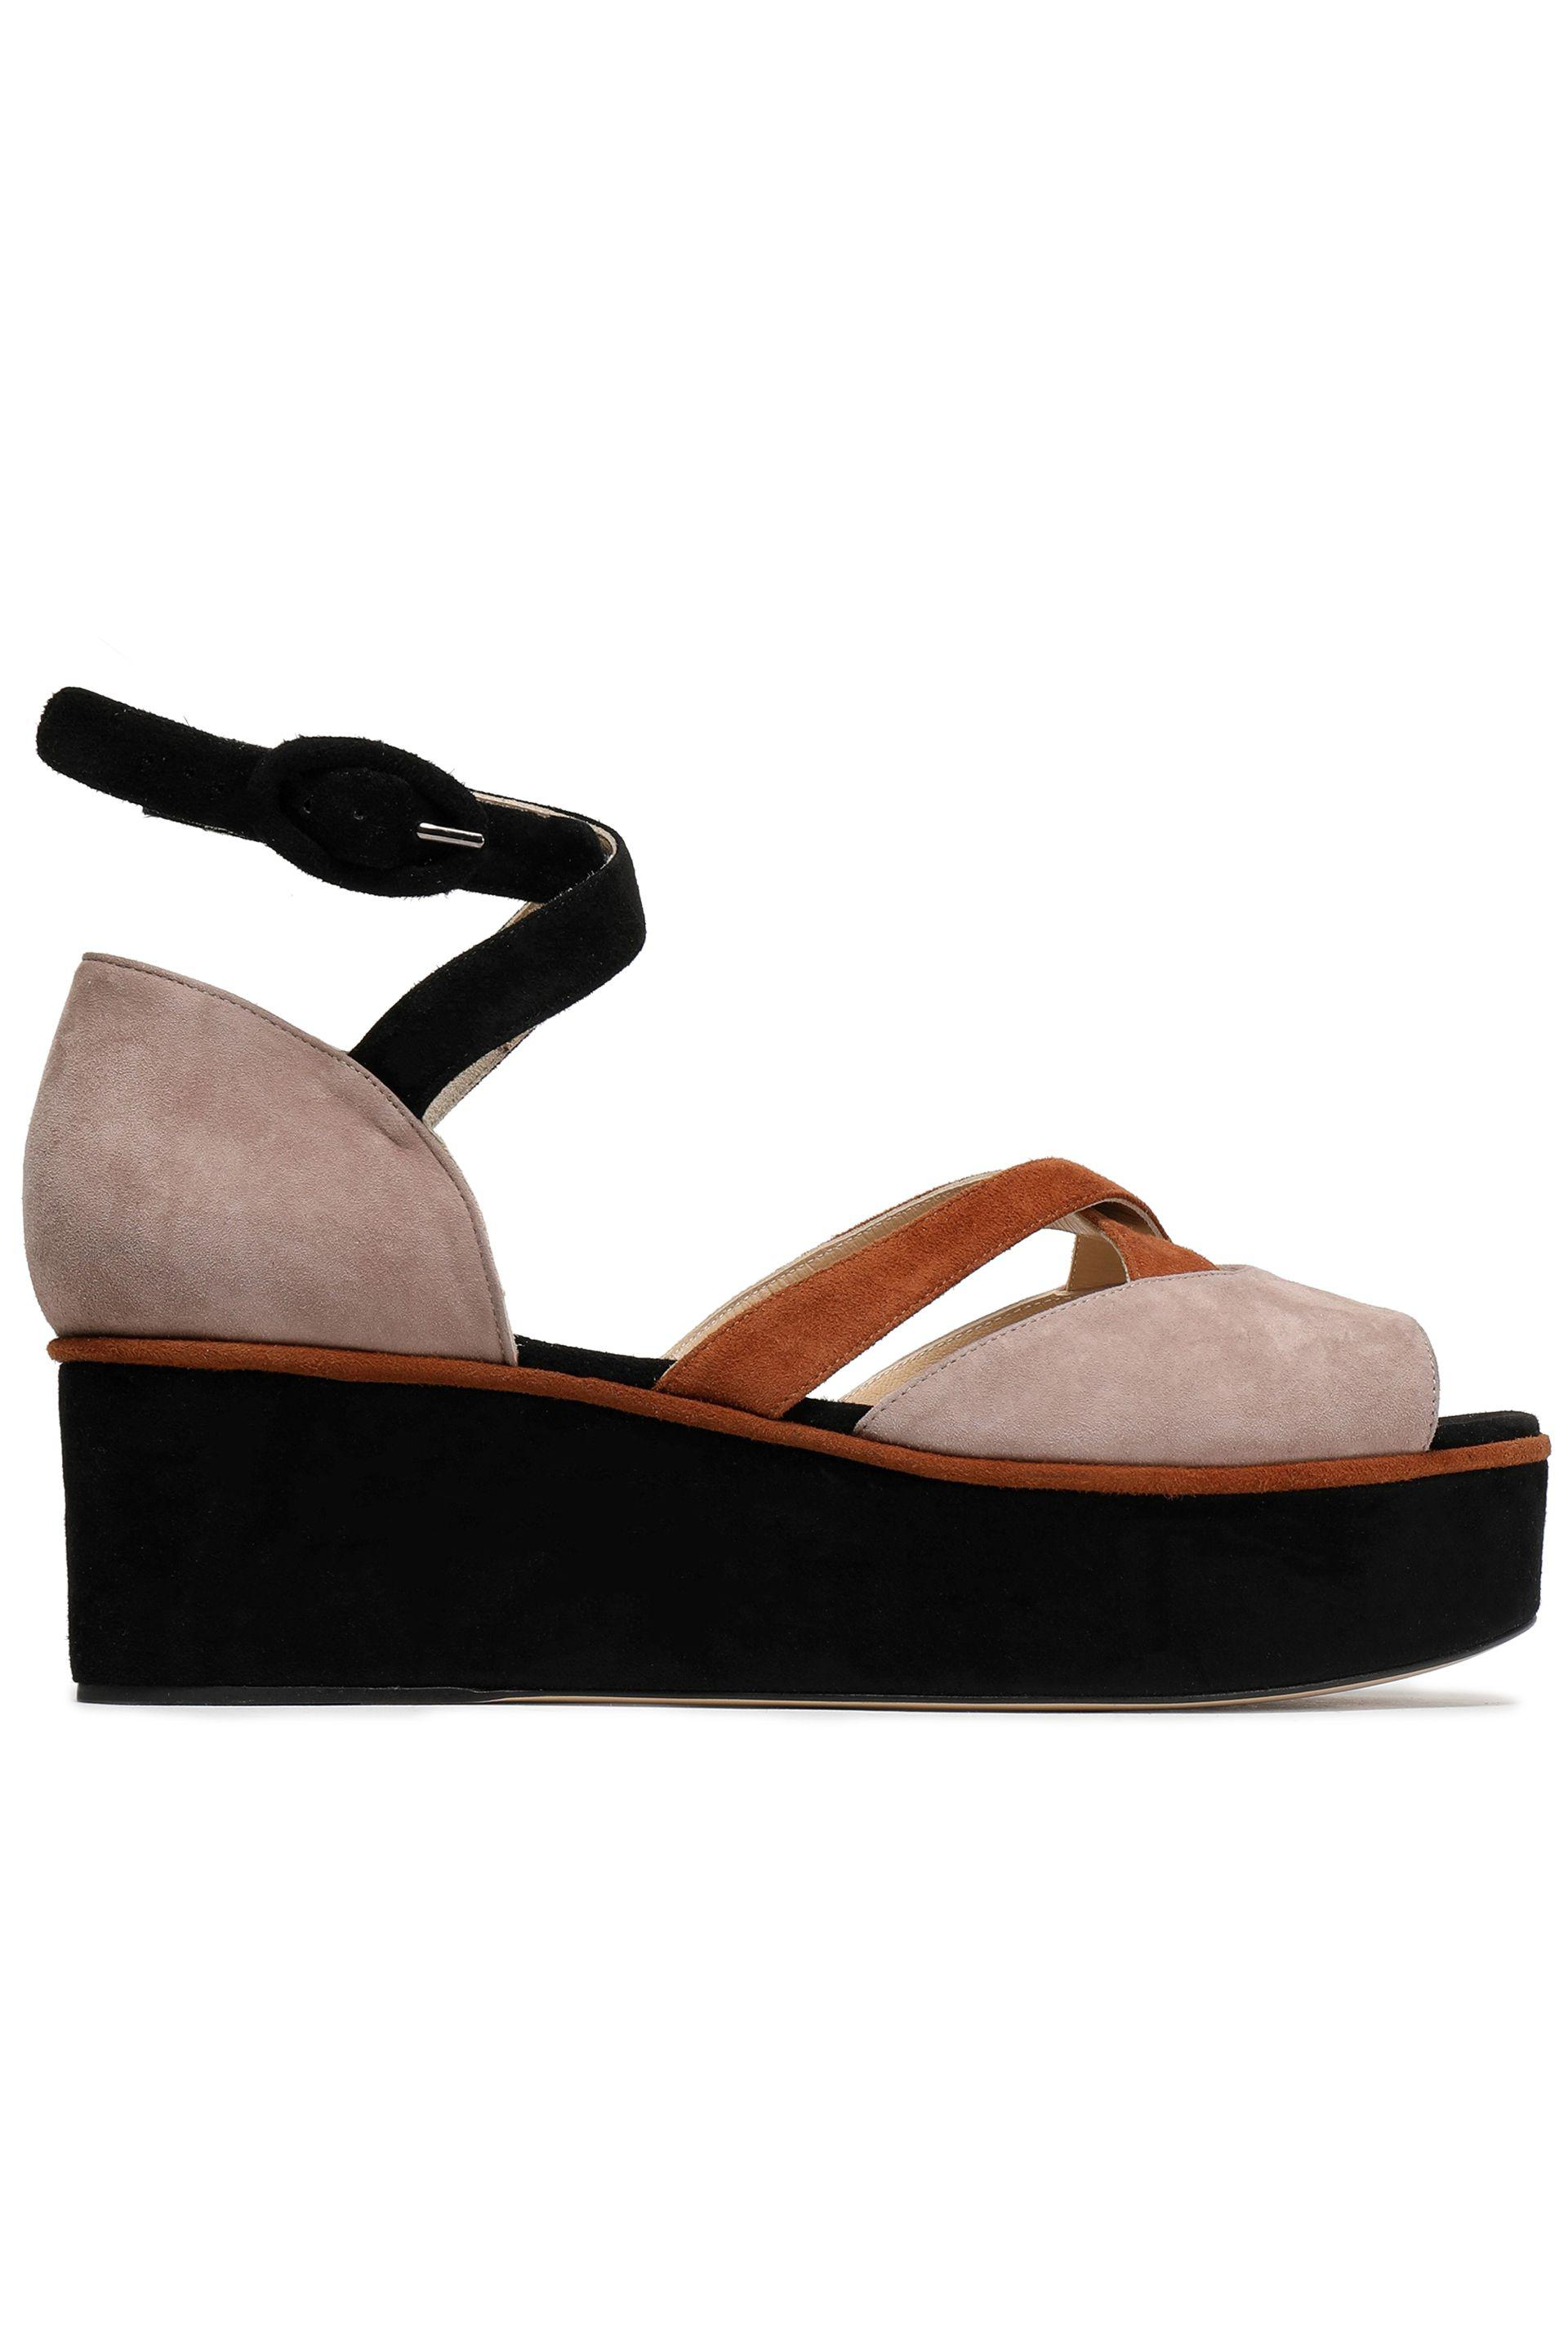 outlet real choice sale online Paul Andrew Suede Platform Sandals free shipping pictures sale how much outlet big sale eaAqxdjAQB